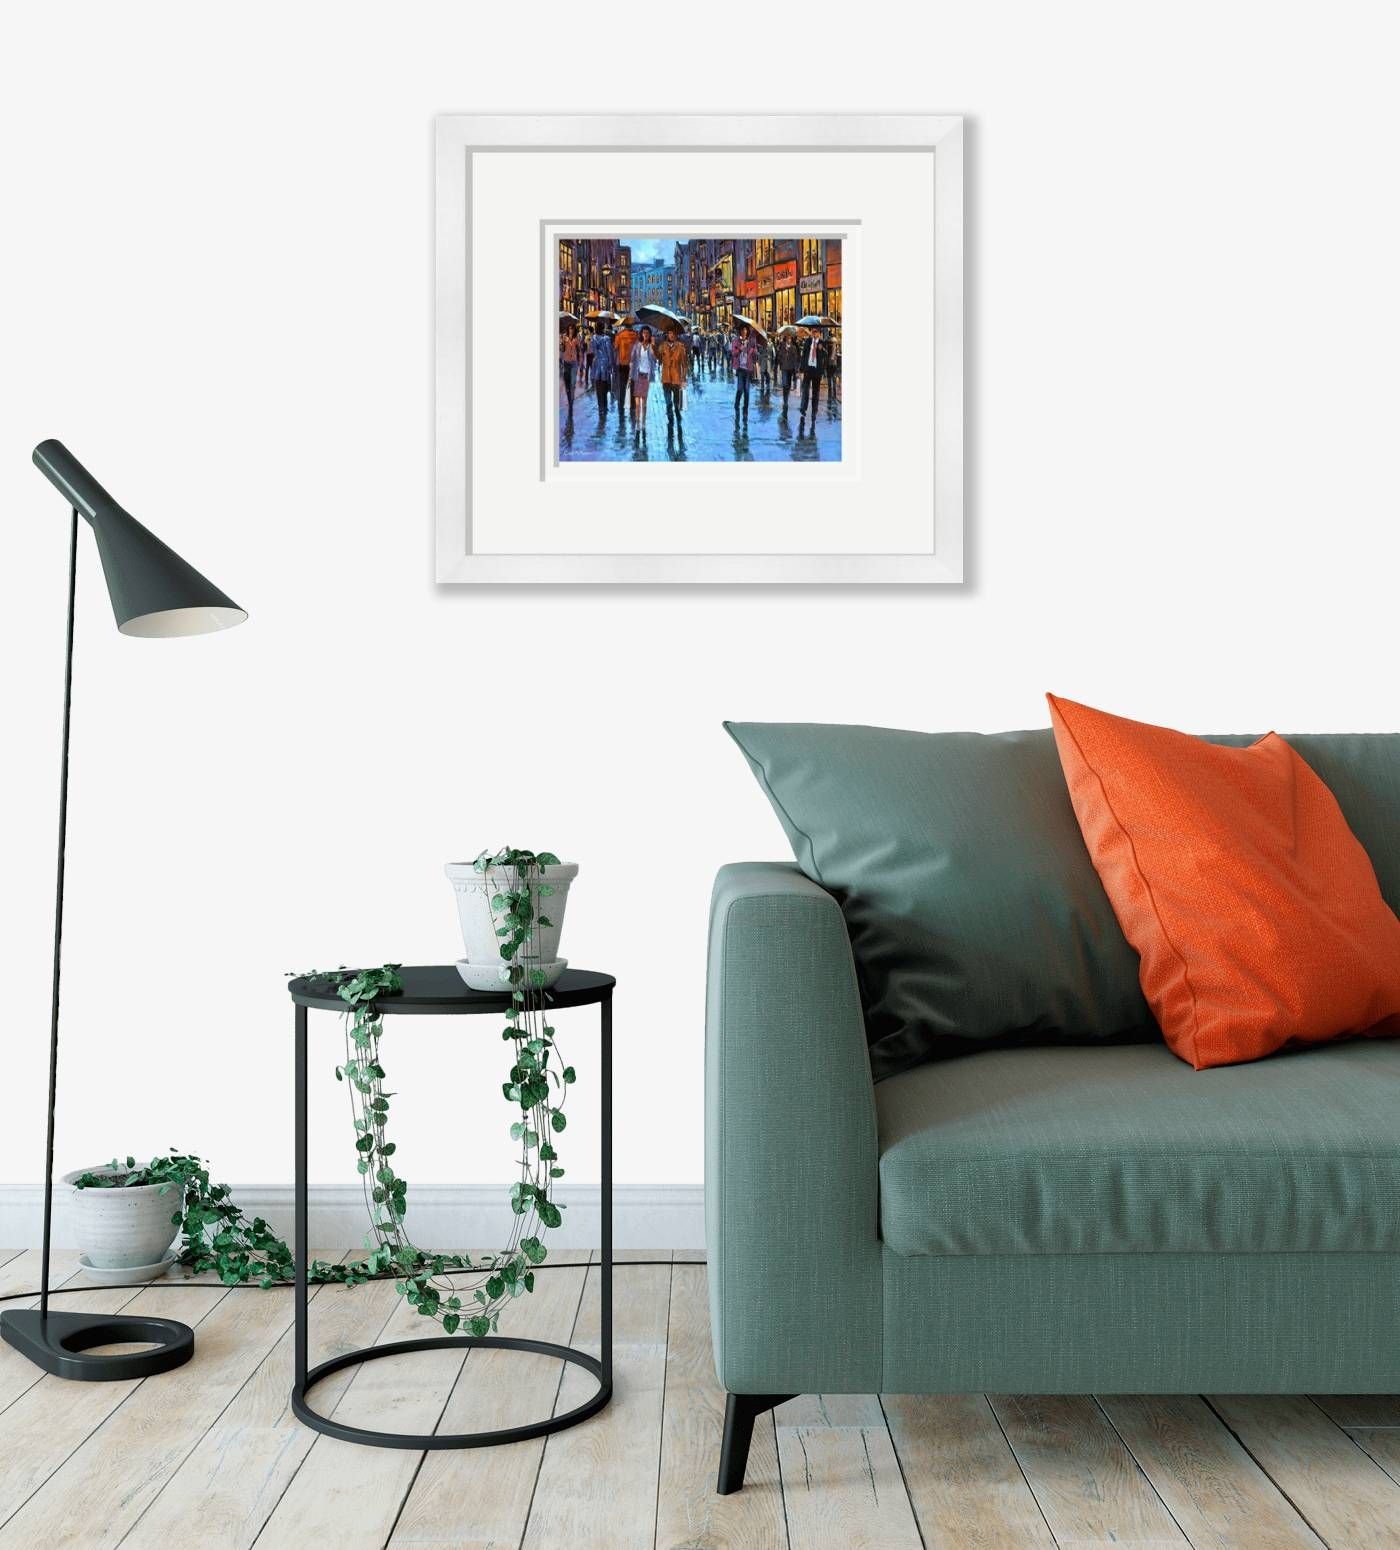 Large framed - Grafton Street People, Dublin - 261 by Chris McMorrow